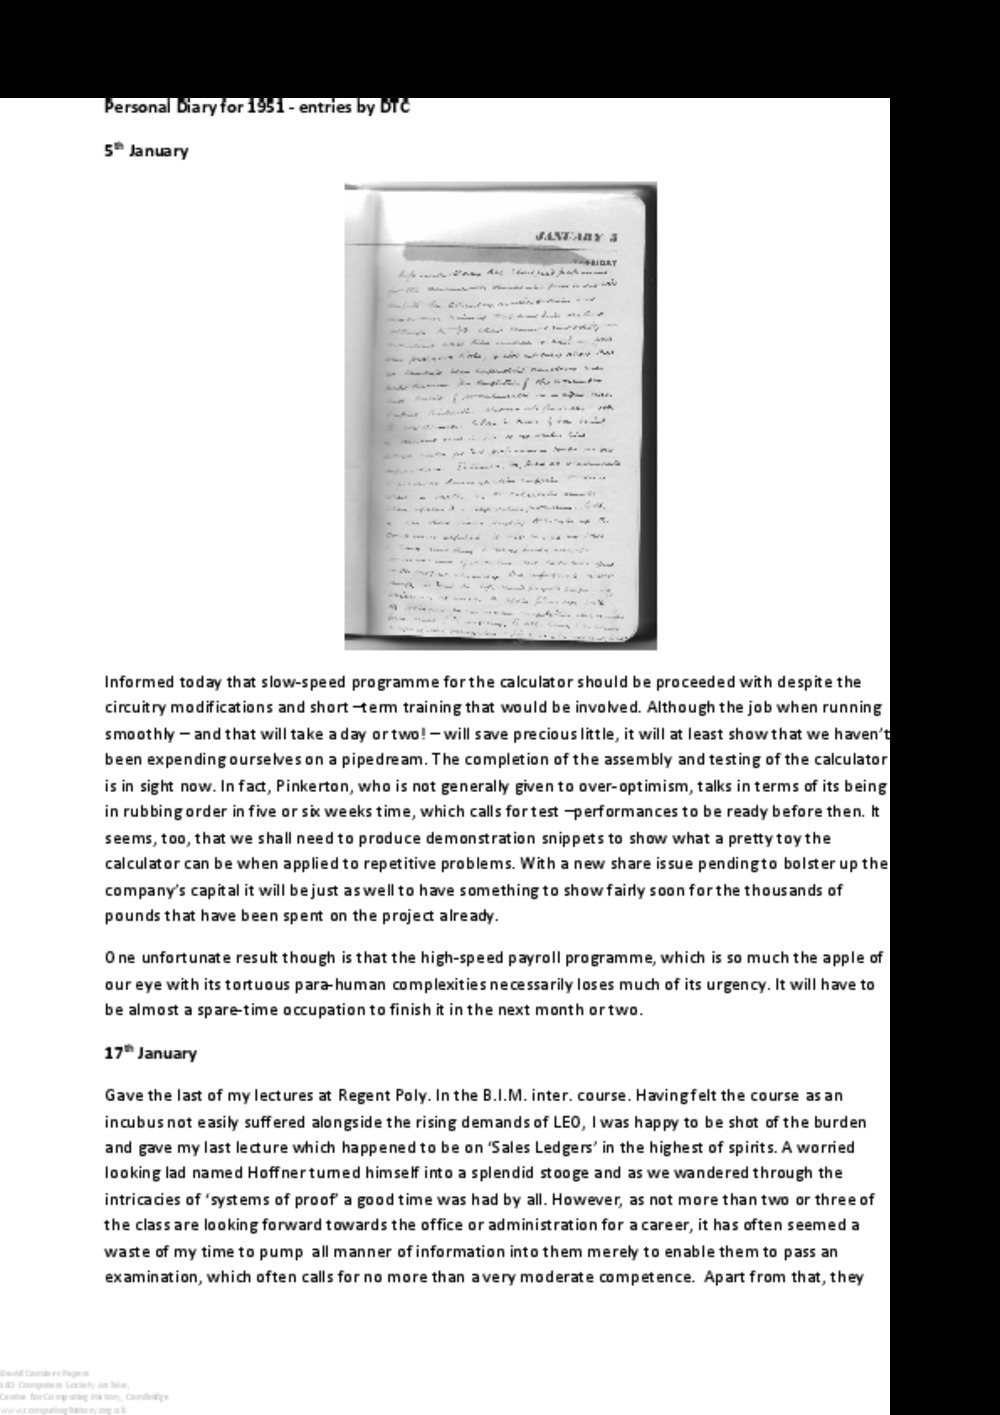 Article: 64175  Transcript from David Caminer's personal diary for 1951